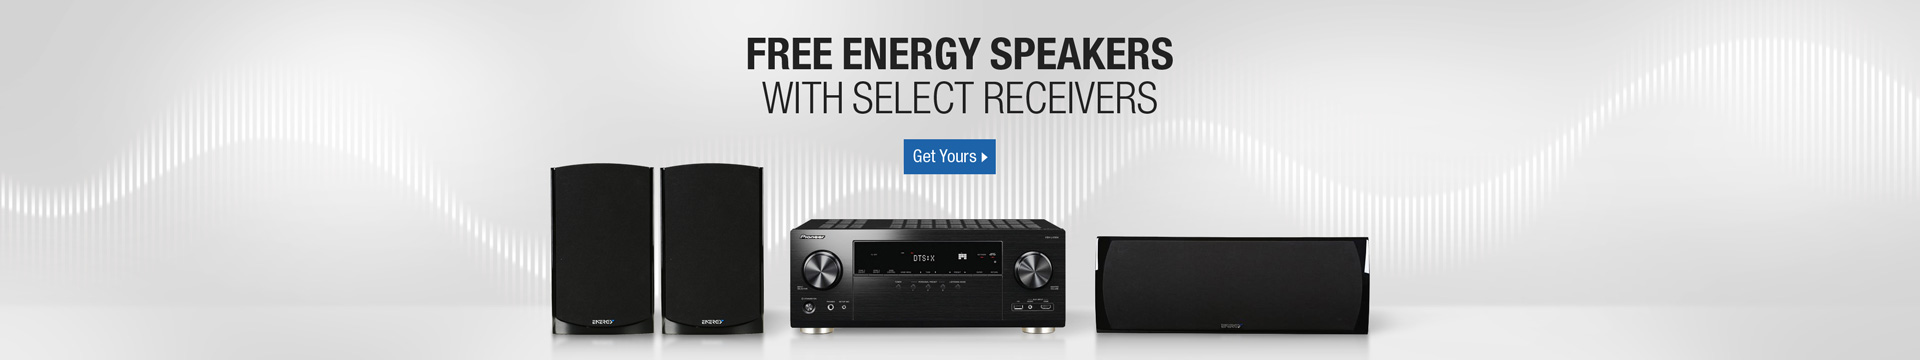 Free energy speakers with select receivers